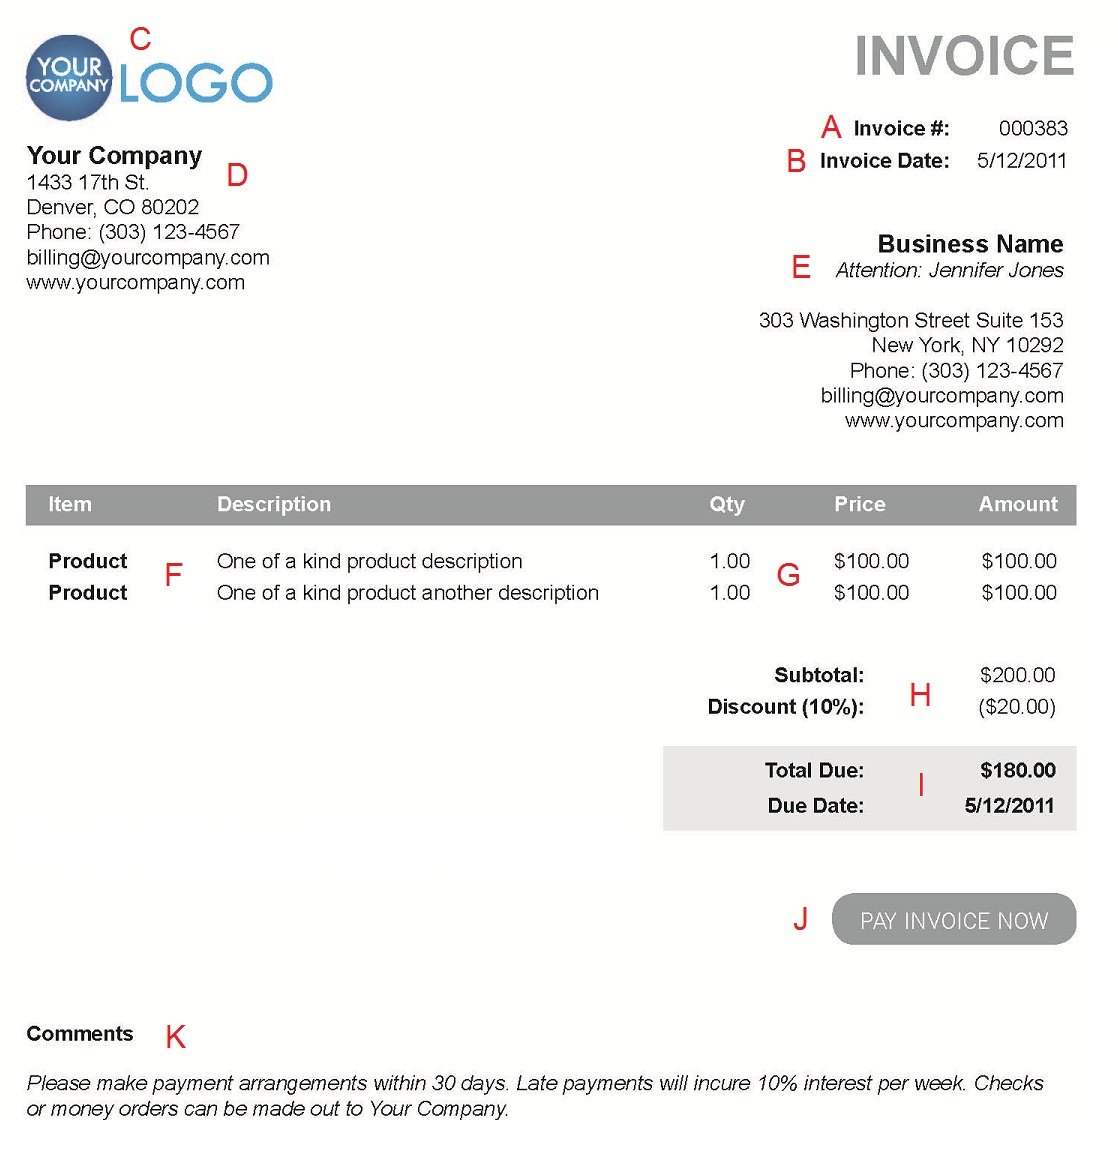 Usdgus  Fascinating The  Different Sections Of An Electronic Payment Invoice With Fetching A  With Captivating House Rent Receipt Doc Also Receiving Receipt Format In Addition Book Receipt Format And Receipt Thermal Printer As Well As Print A Receipt Free Additionally Read Receipt Mail From Paysimplecom With Usdgus  Fetching The  Different Sections Of An Electronic Payment Invoice With Captivating A  And Fascinating House Rent Receipt Doc Also Receiving Receipt Format In Addition Book Receipt Format From Paysimplecom